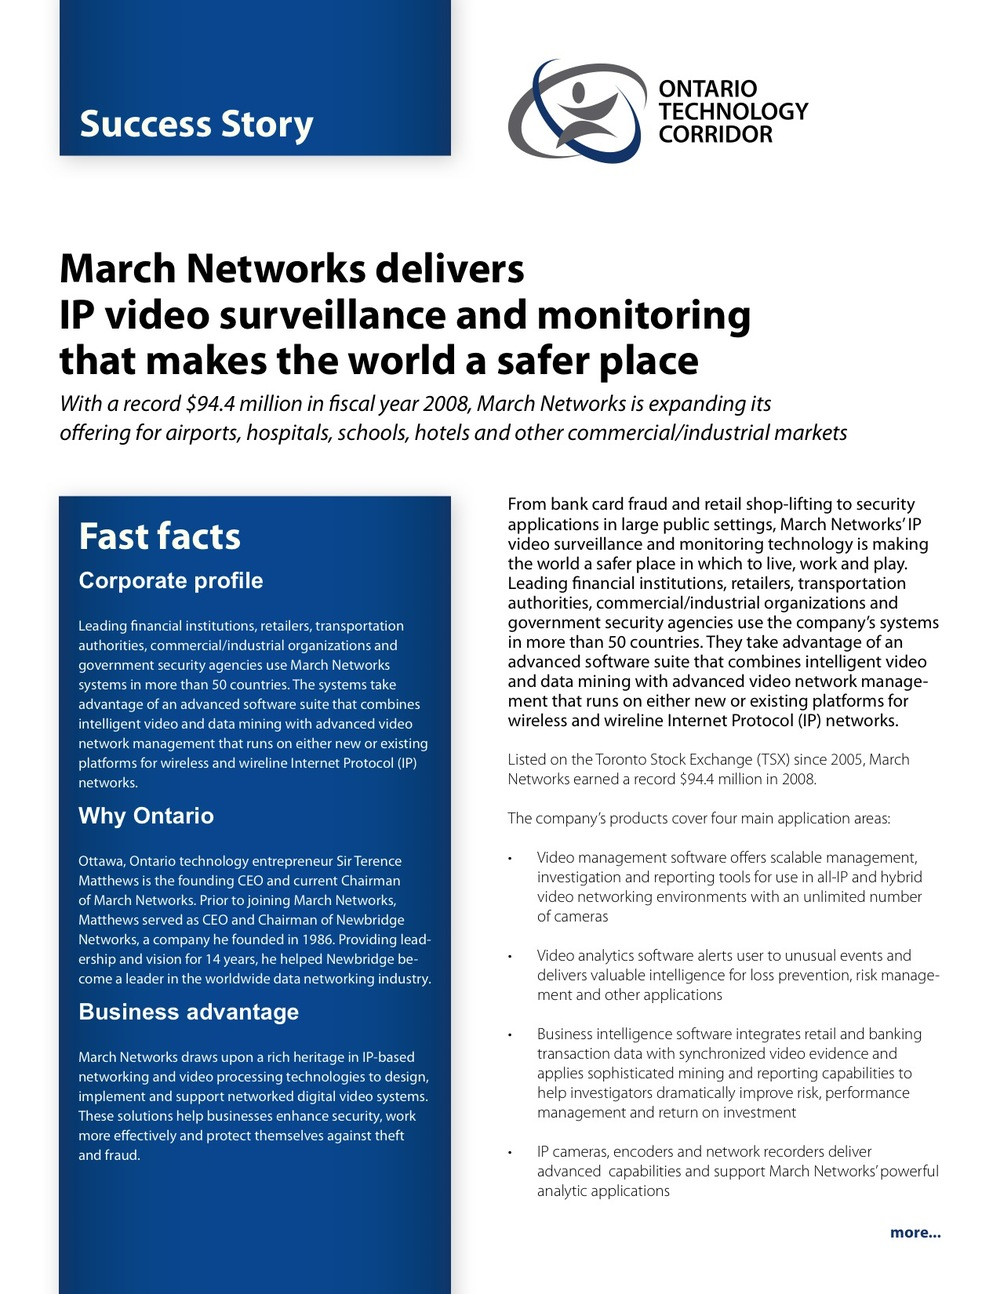 OTC-success-marchnetworks-Feb2011-view-page1.jpg